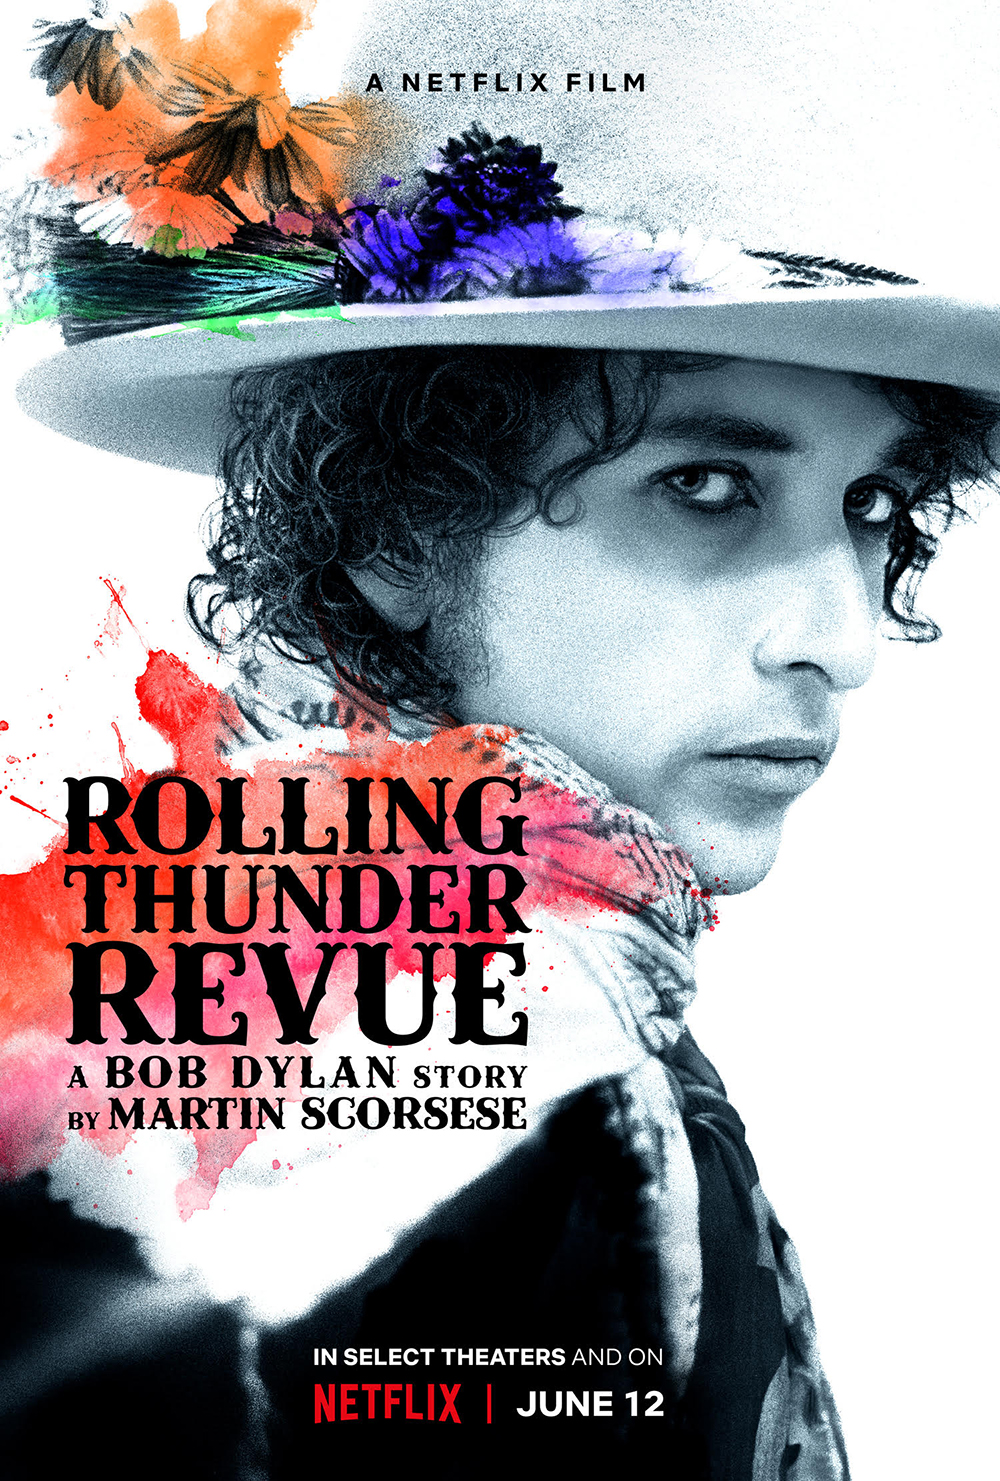 Martin Scorsese's 'Rolling Thunder' Bob Dylan Doc Hits Netflix June 12 (EXCLUSIVE)